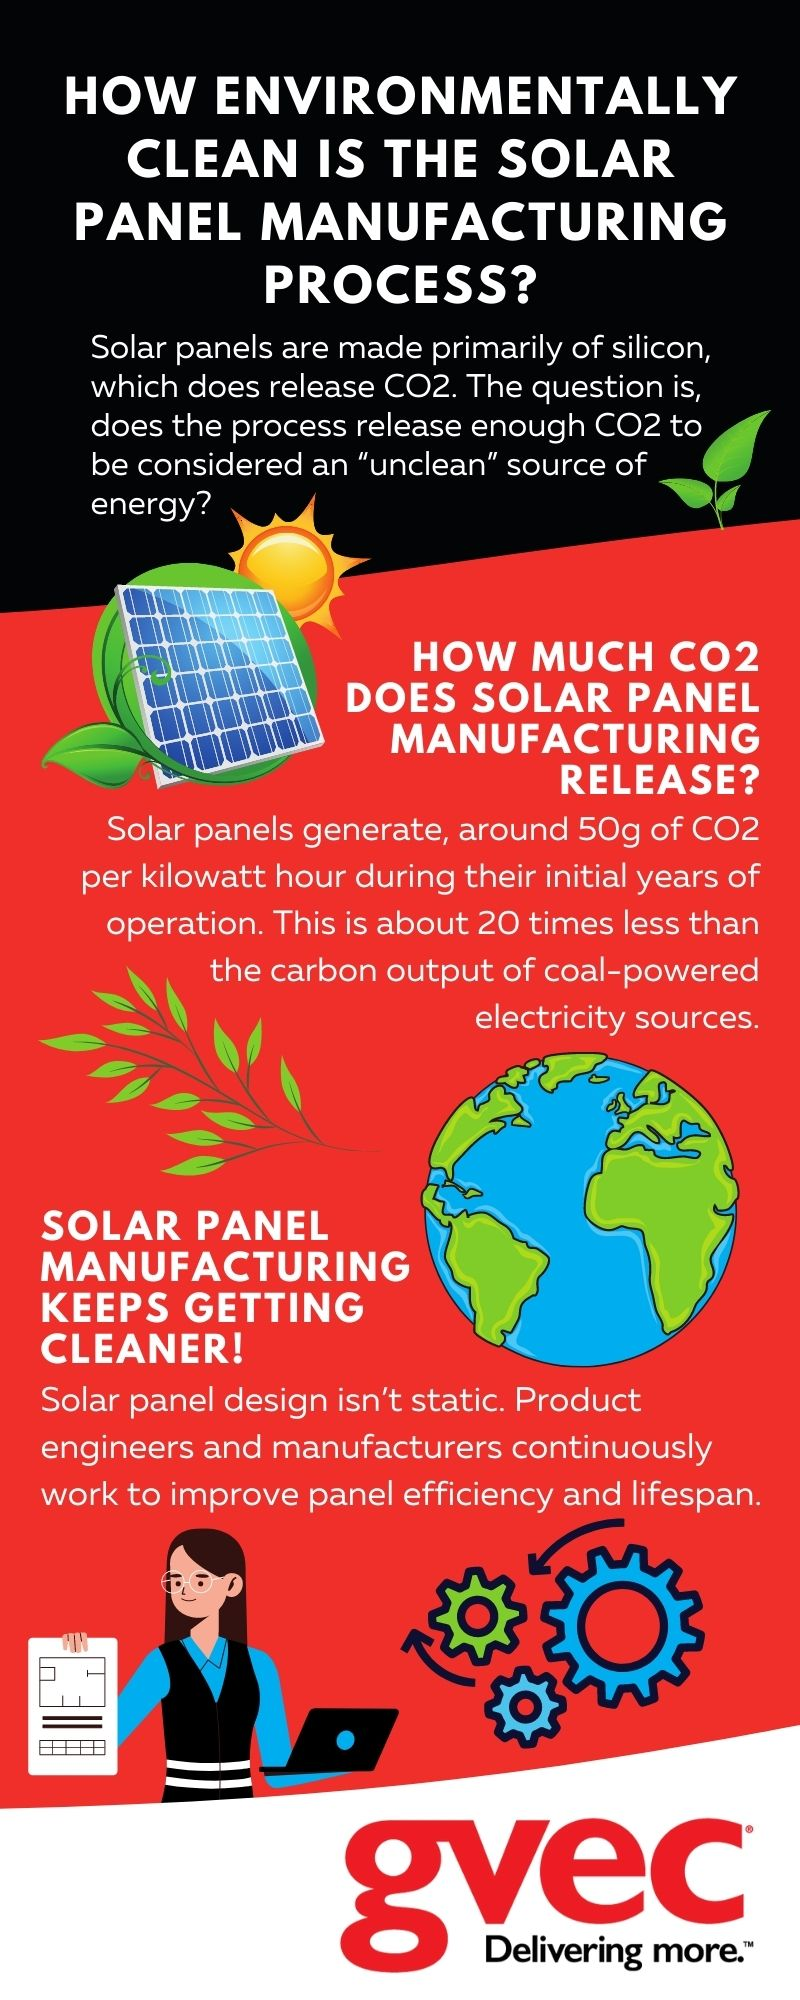 How Environmentally Clean is Solar Panel Manufacturing Process